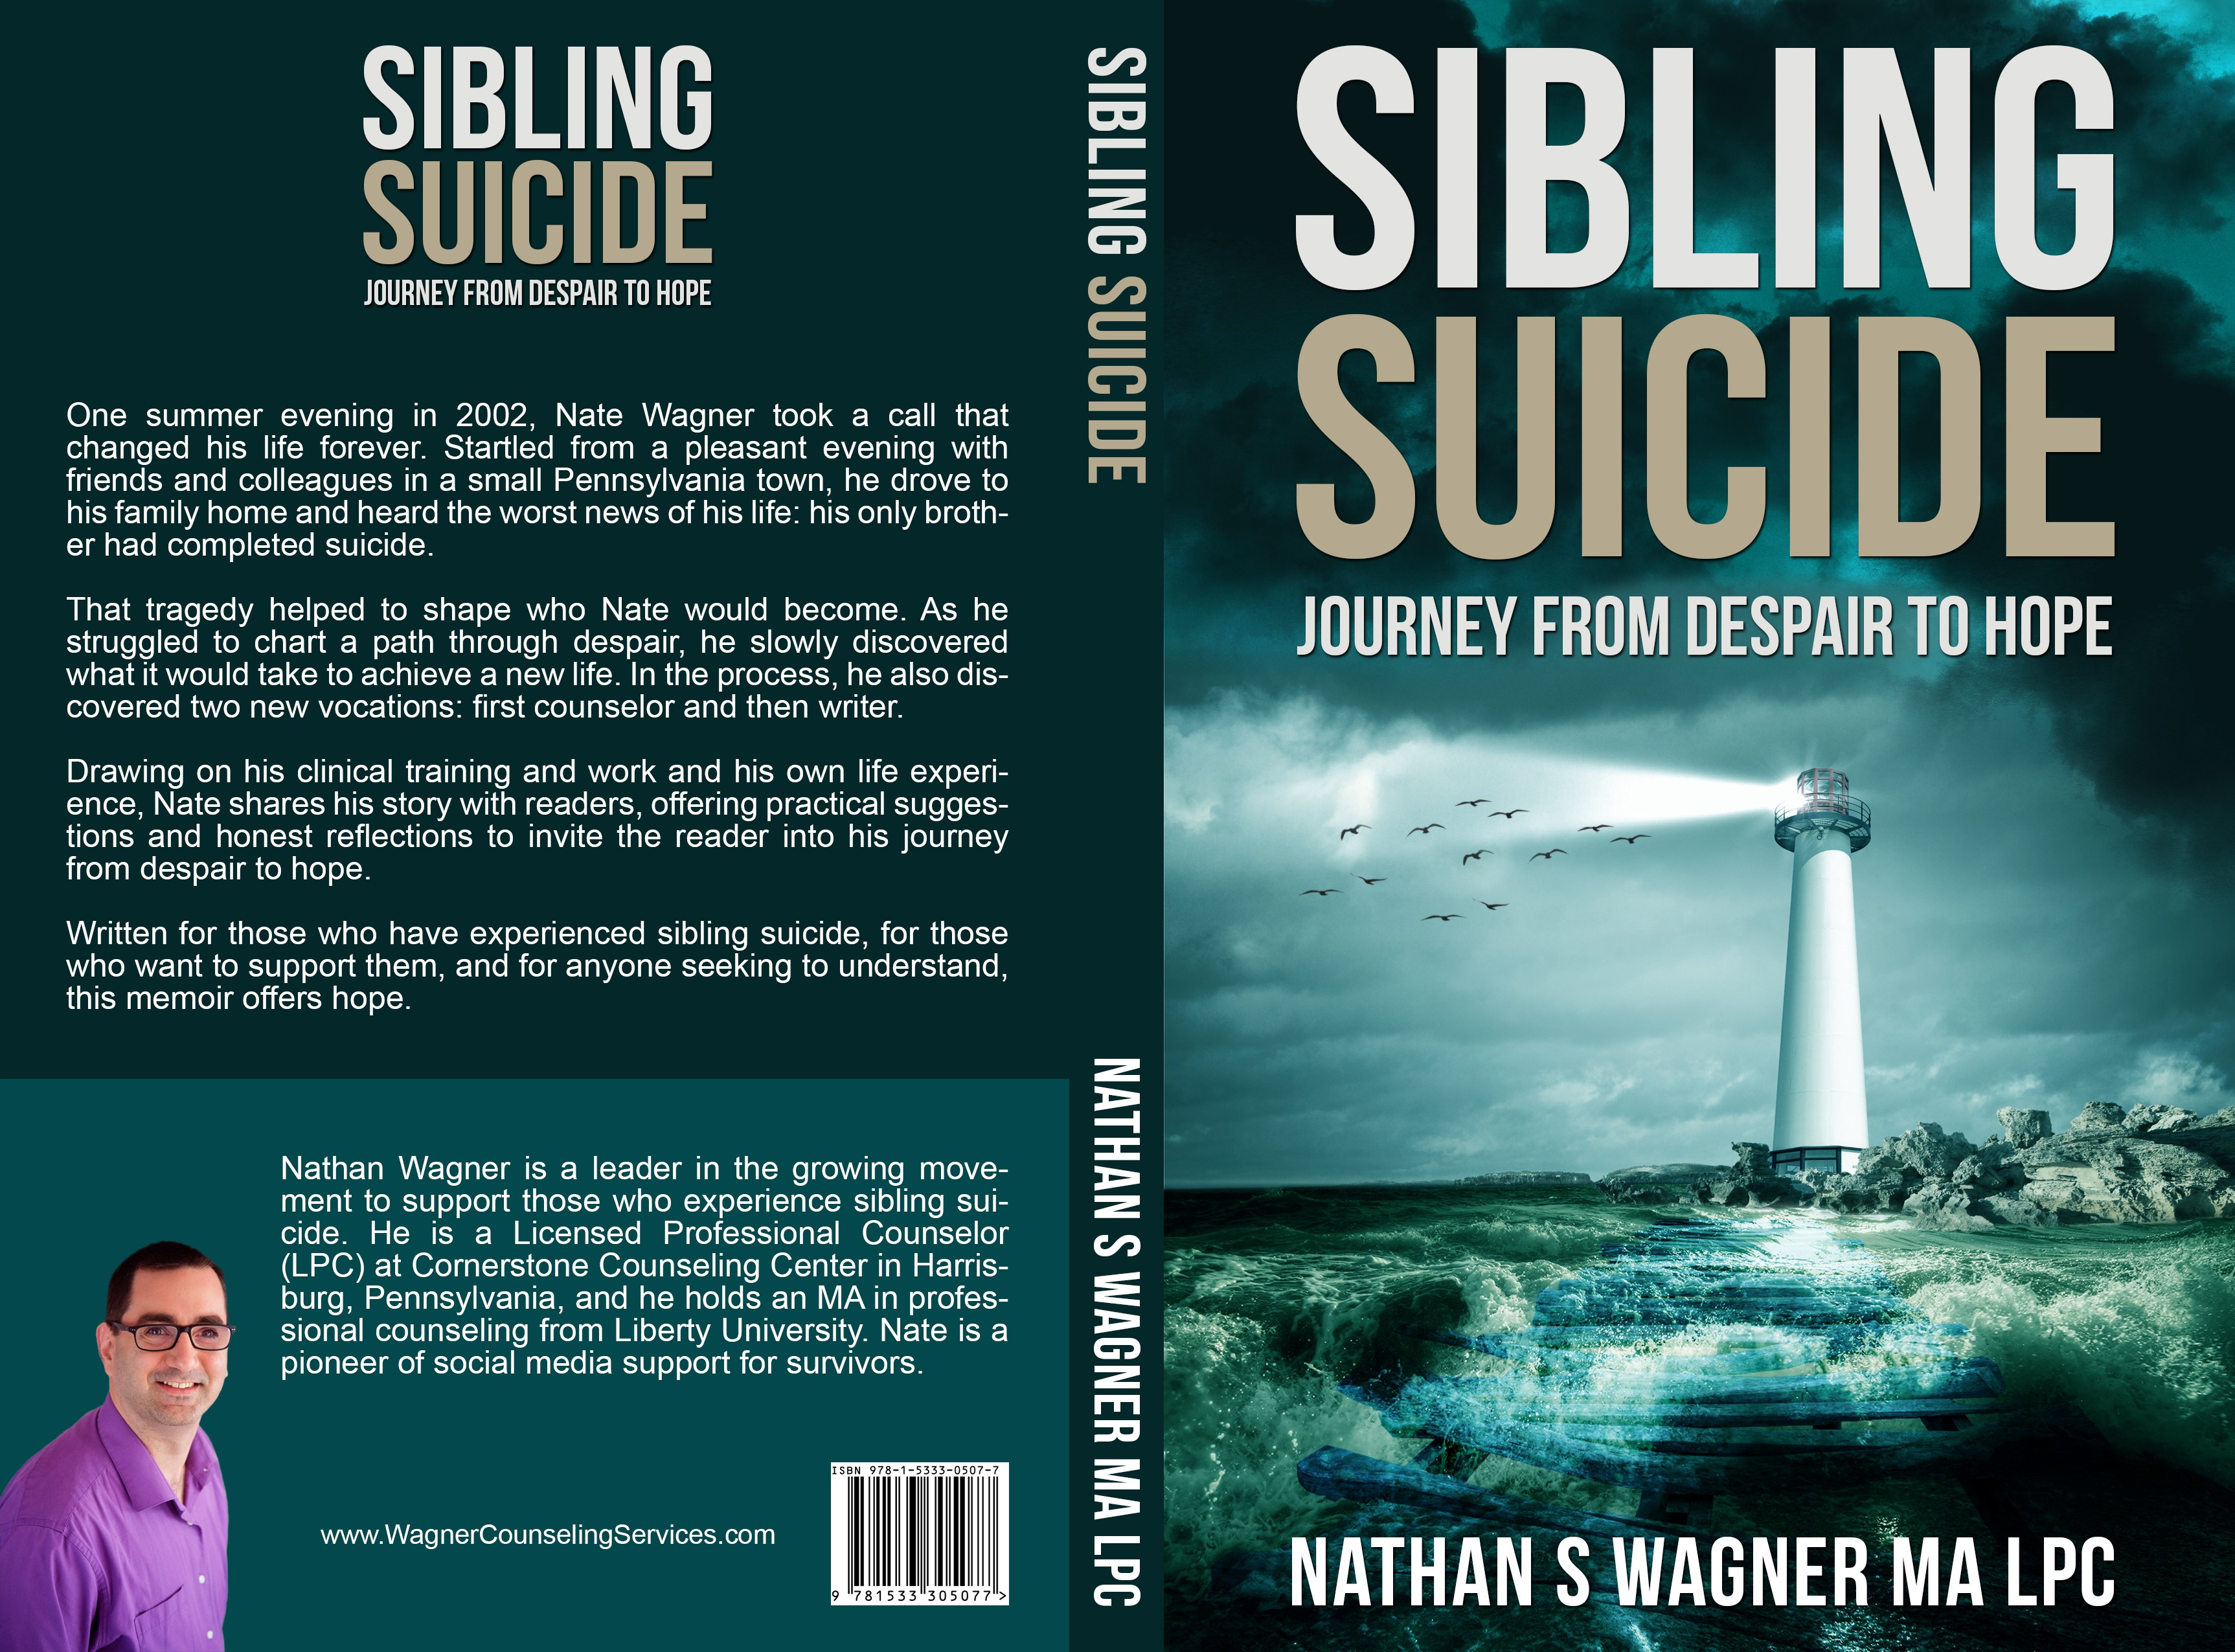 Create a captivating book cover for a memoir Sibling Suicide: Journey from Despair to Hope